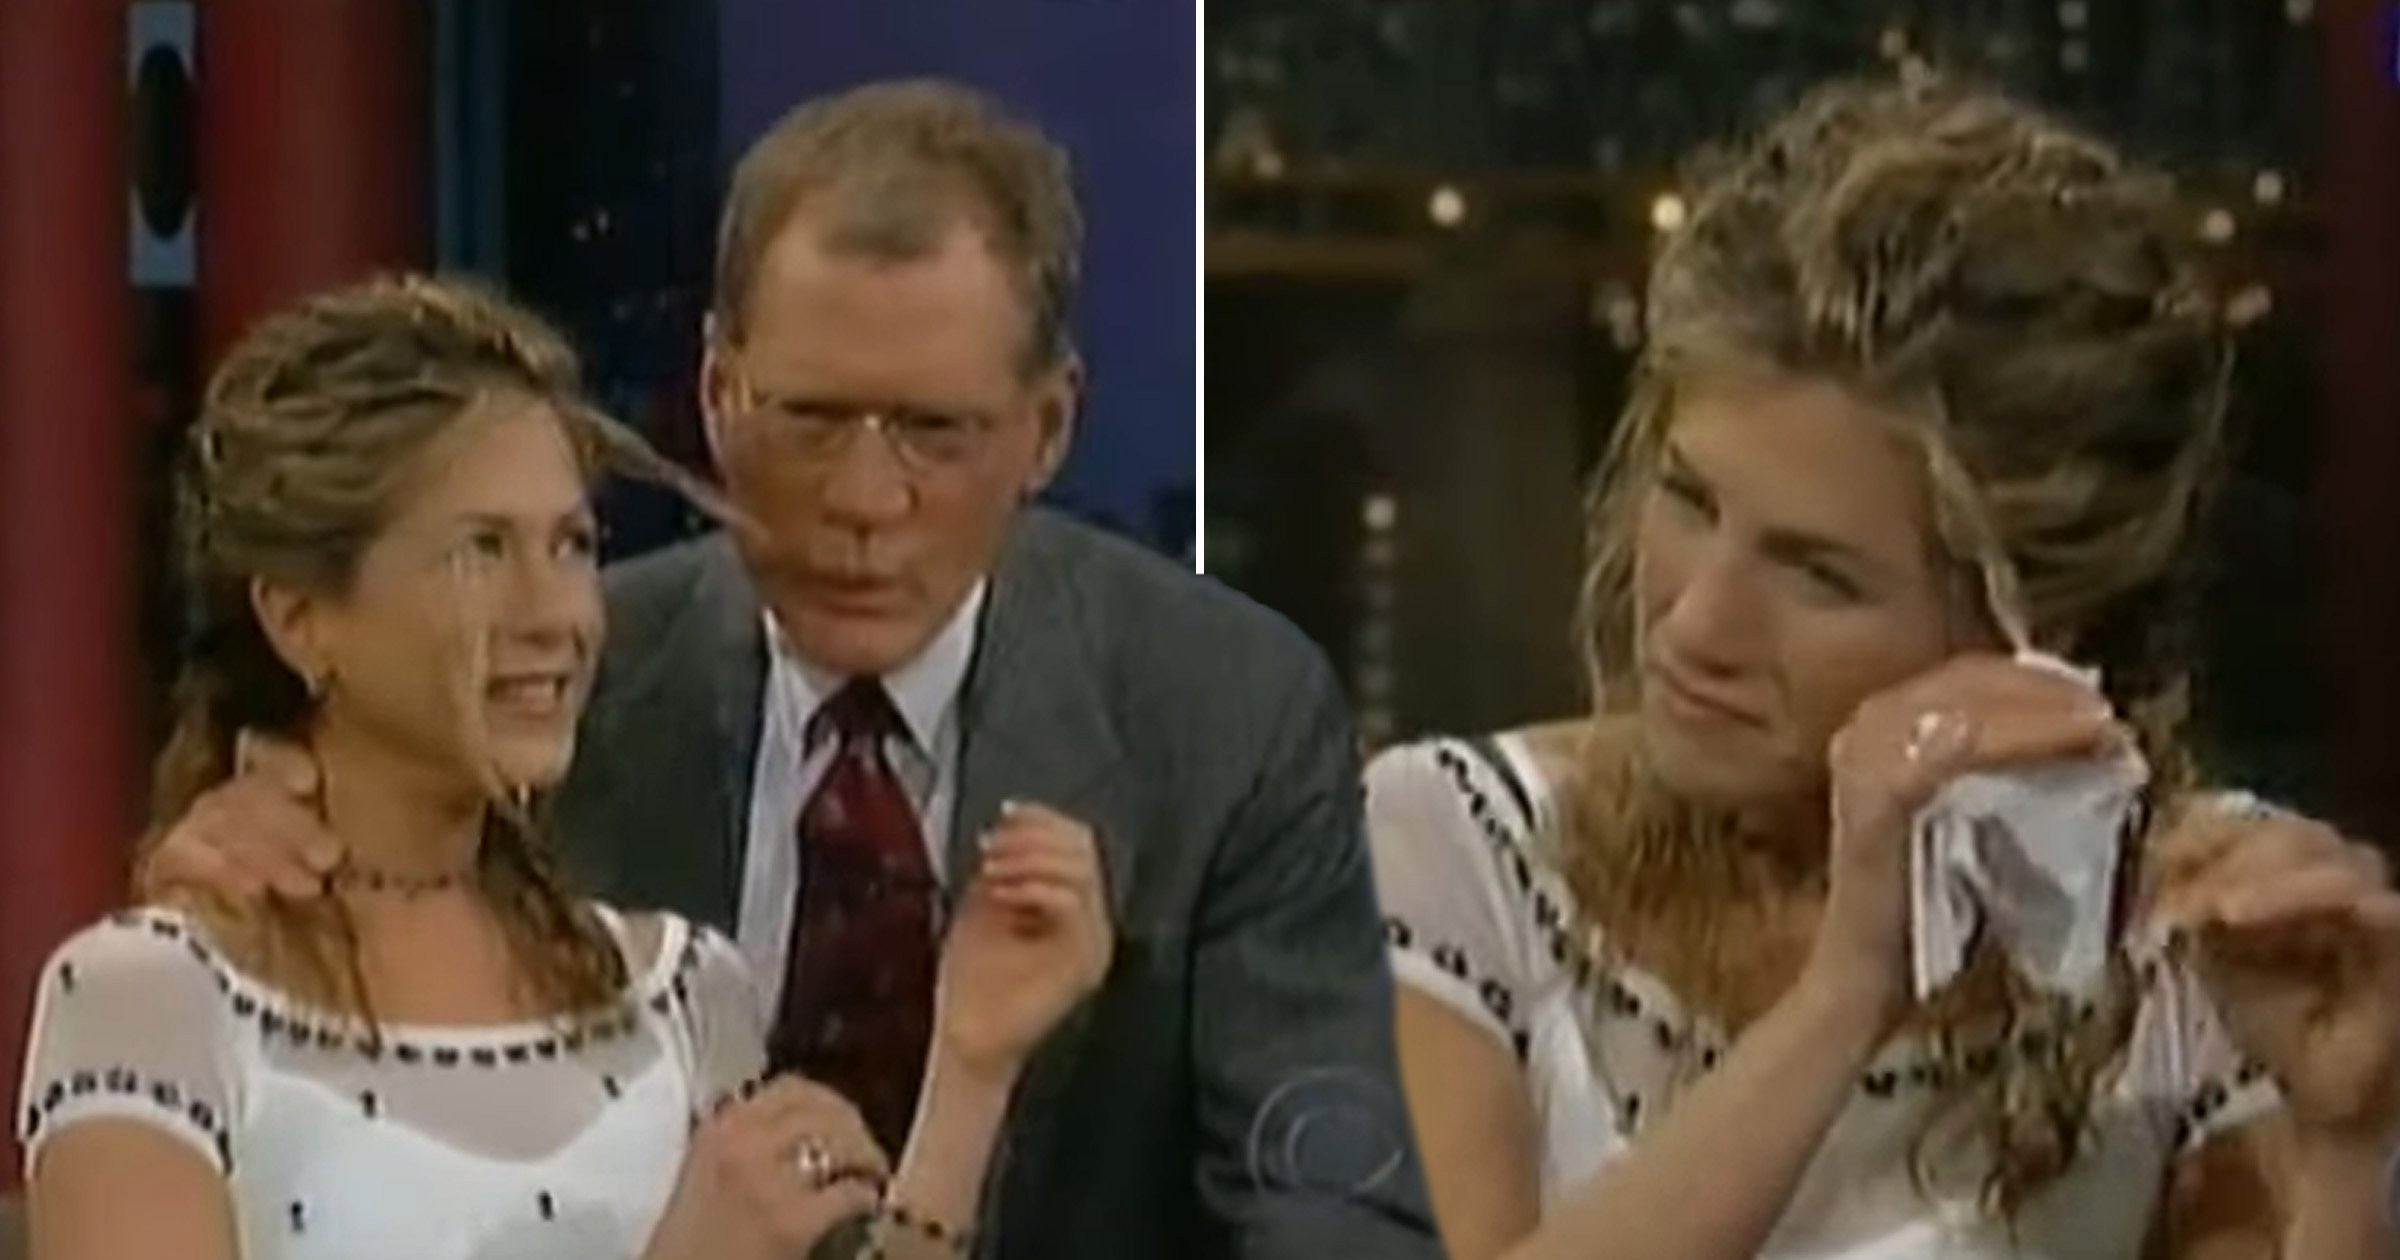 David Letterman branded 'sick' for sucking on Jennifer Aniston's hair in 'disturbing' interview